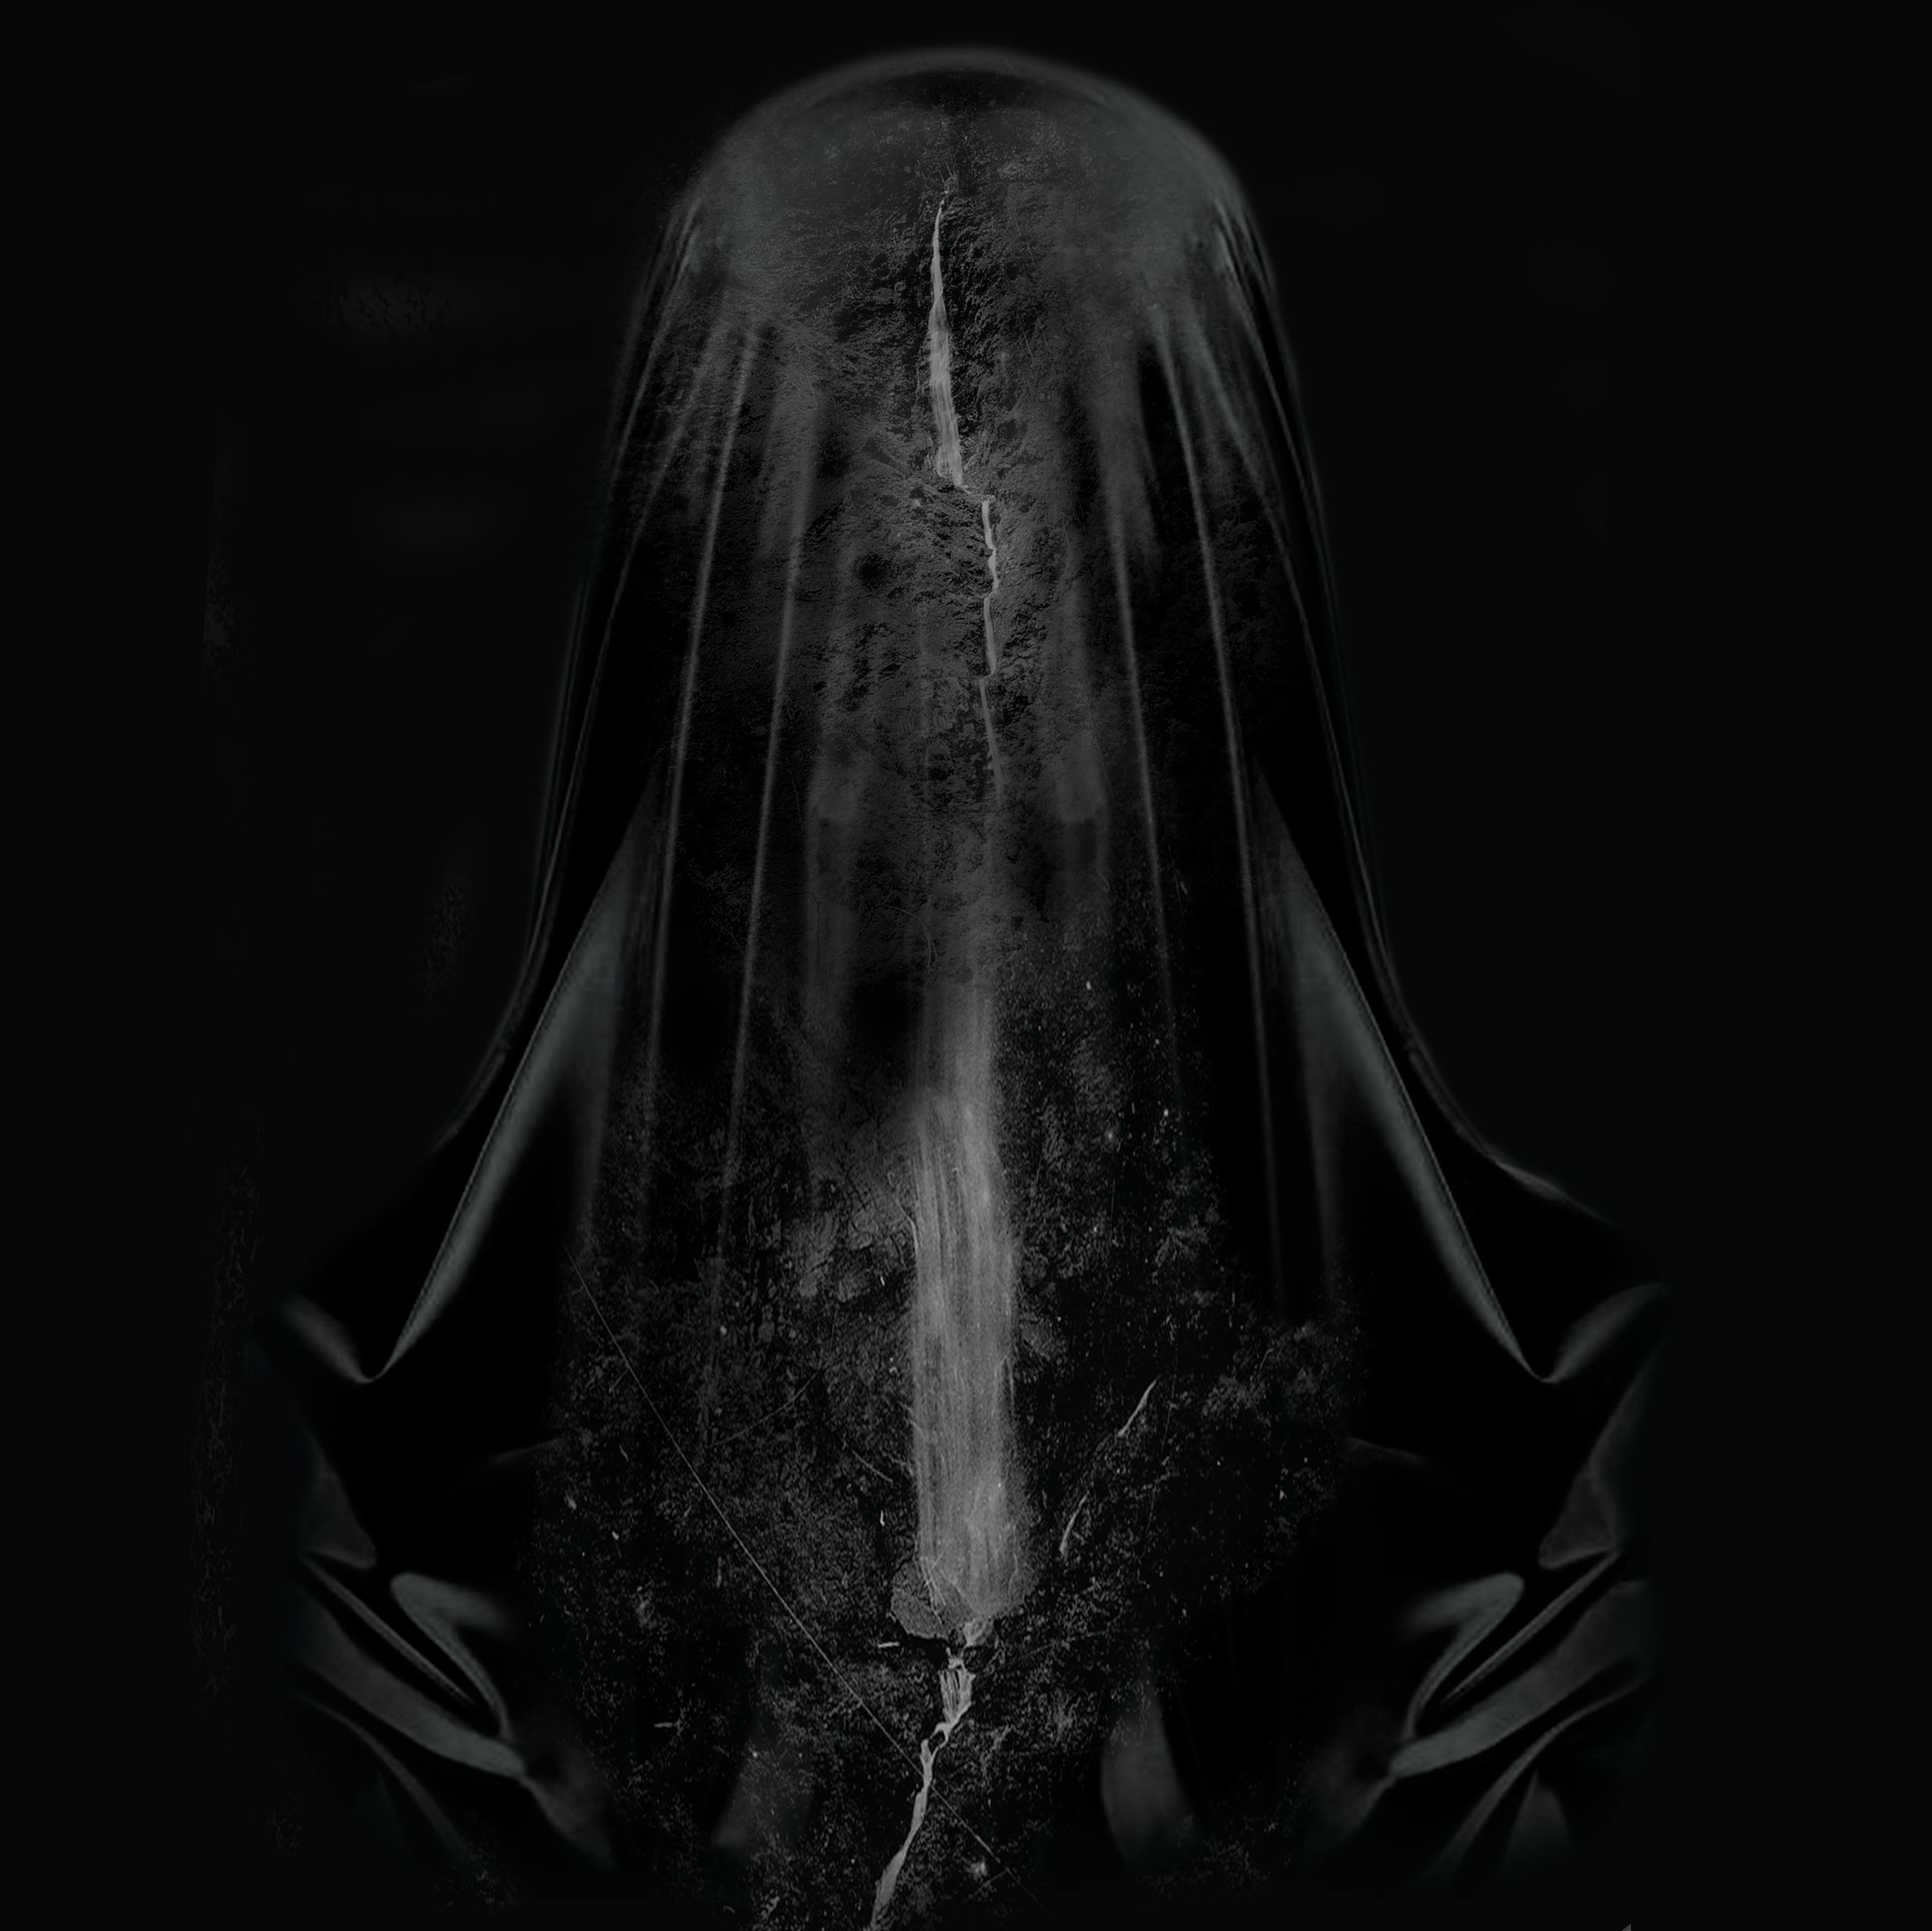 Dark Ambient Archives - This Is Darkness